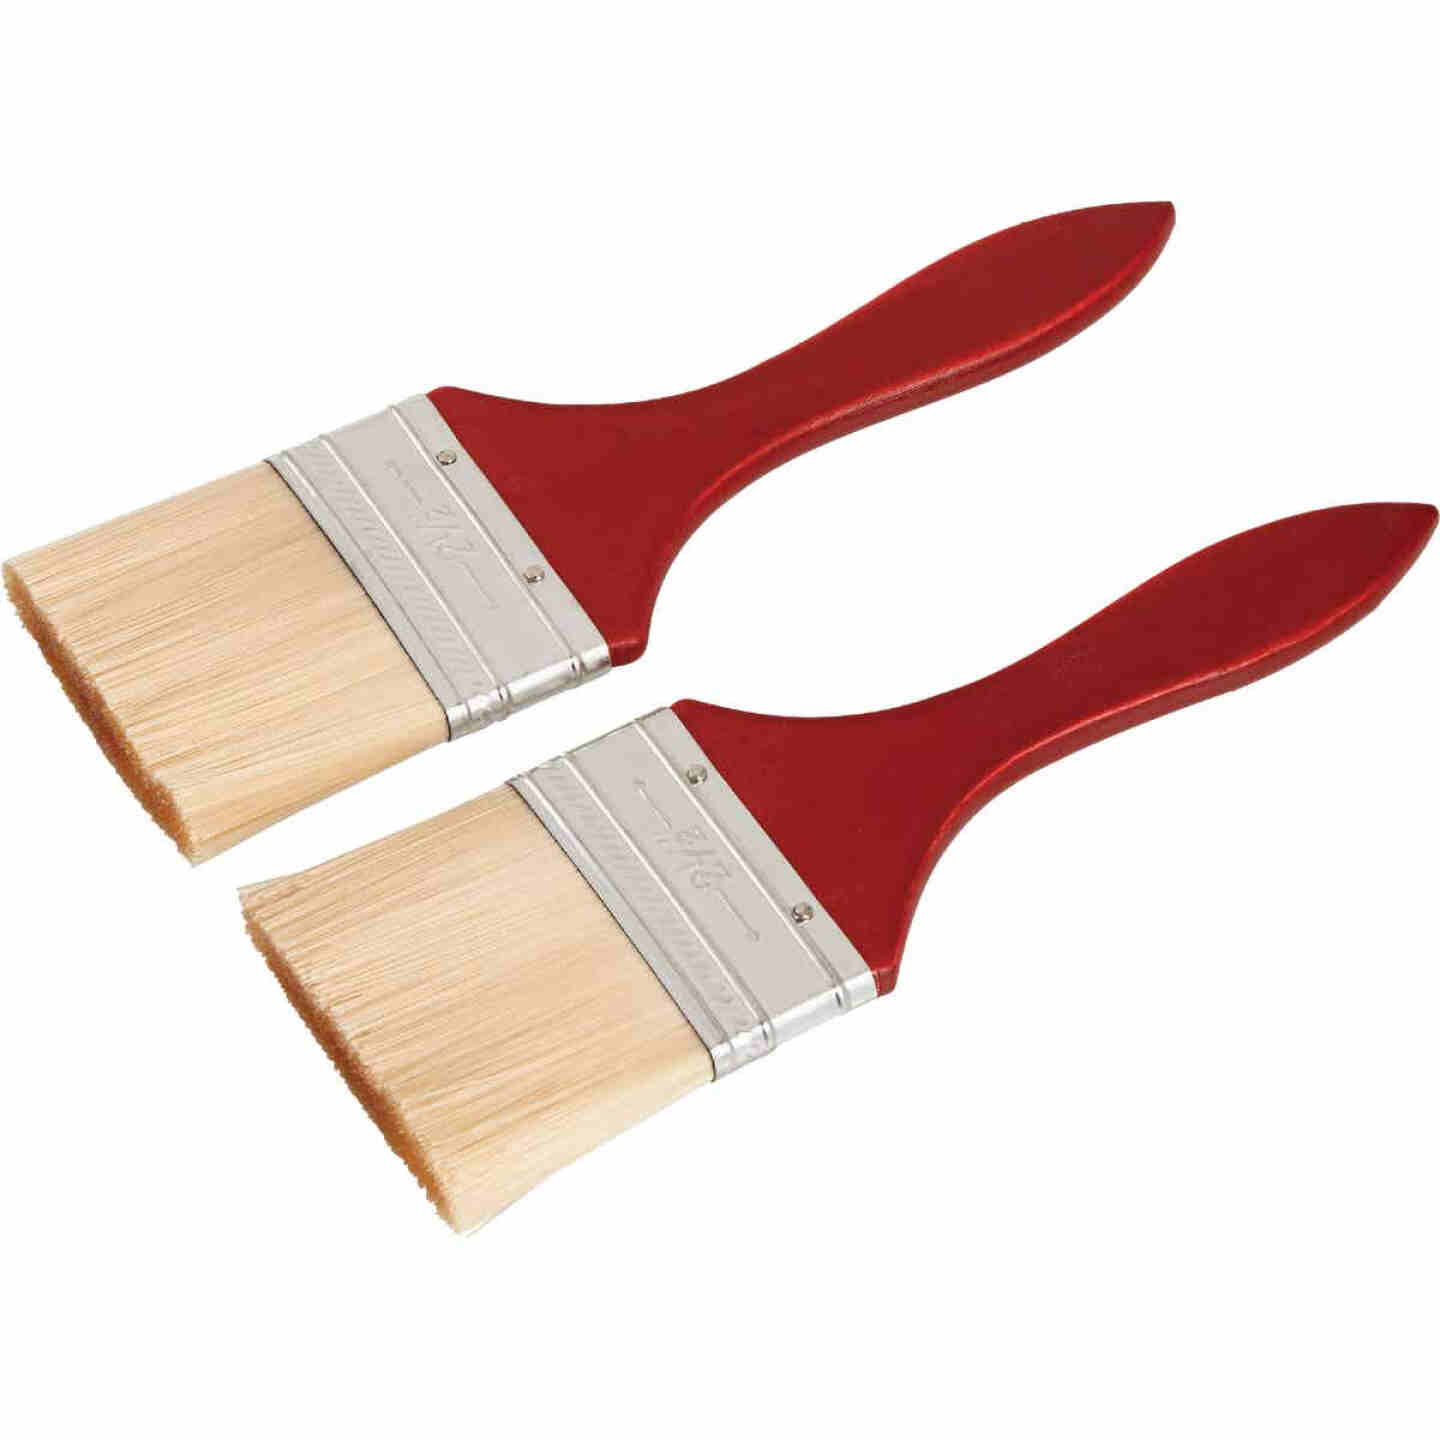 Smart Savers 2-1/2 In. Flat Trim Polyester Paint Brush Set (2-Pack) Image 2